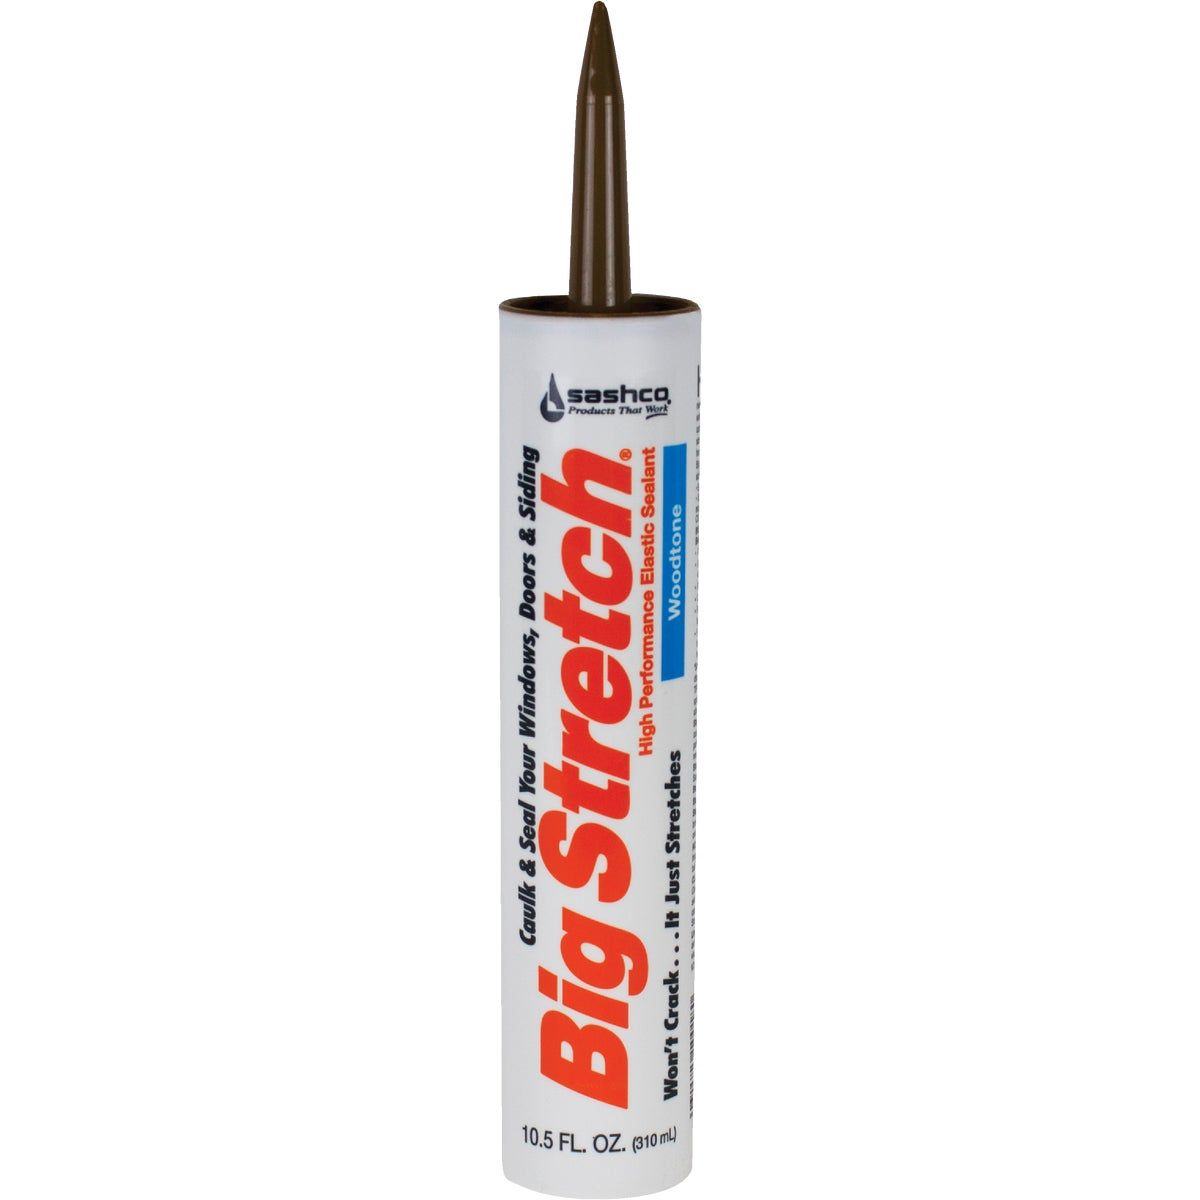 WOODTONE ACRYLIC CAULK - 10018 by Sashco Sealants Inc